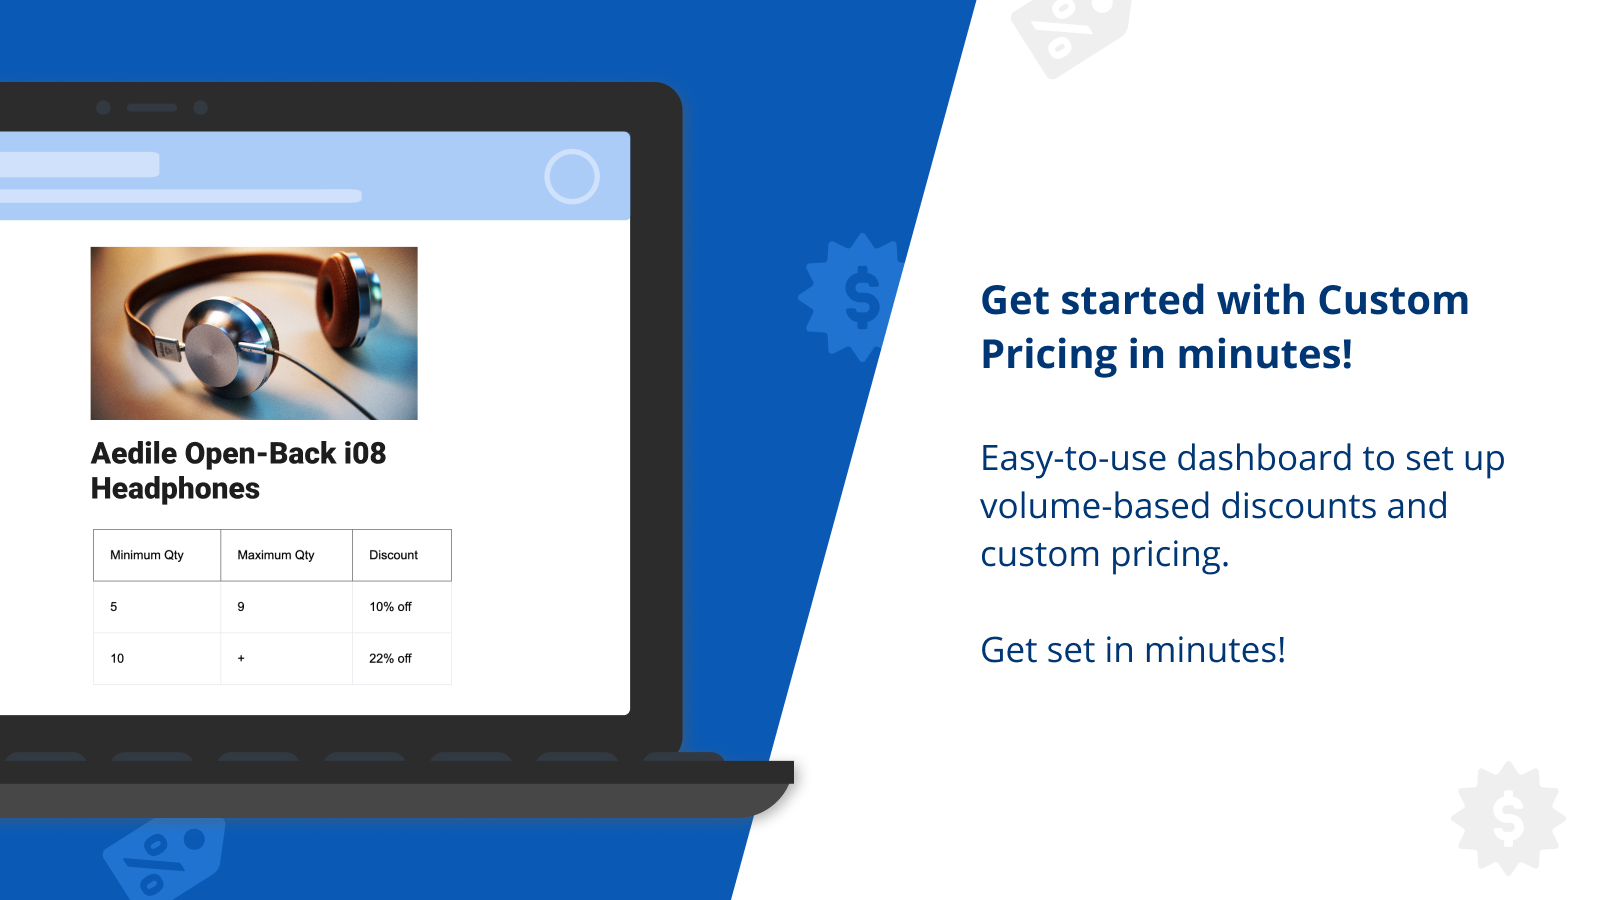 Easy to get started with discounted pricing and volume discounts